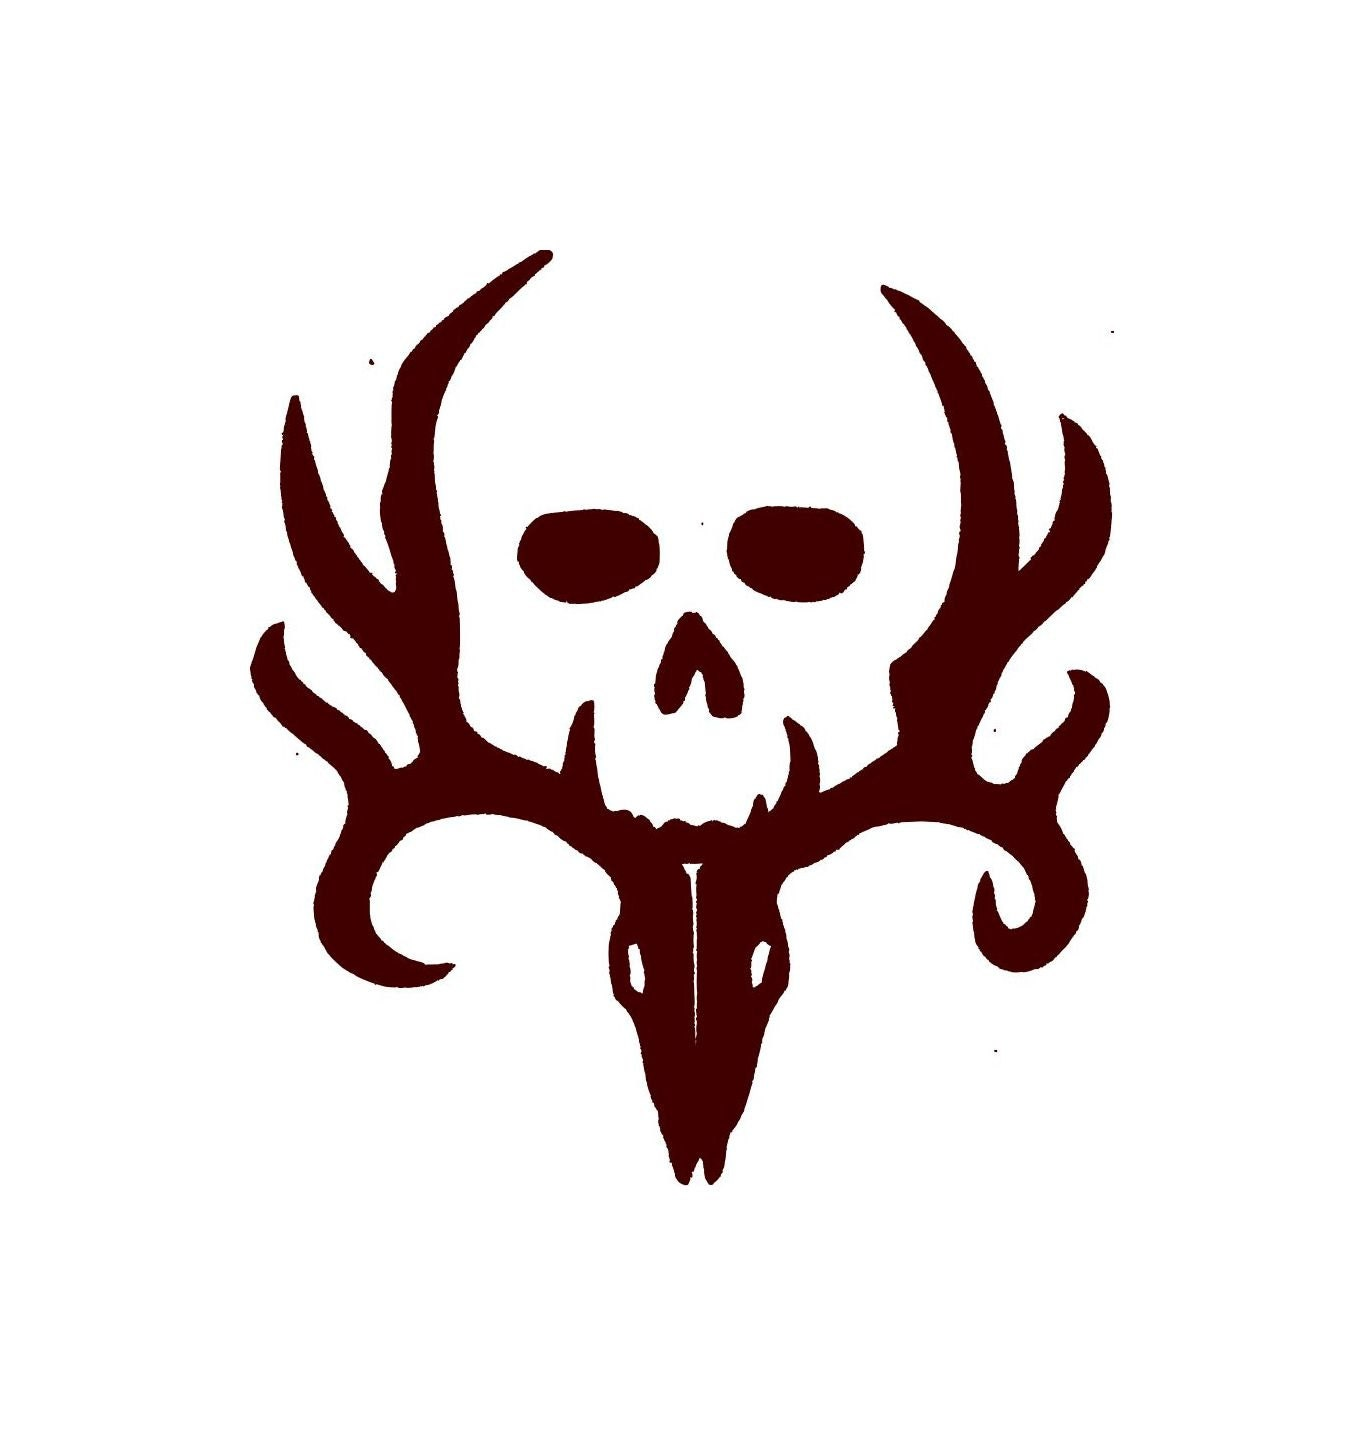 Deer hunting decal with skull car decal vinyl car decals zoom biocorpaavc